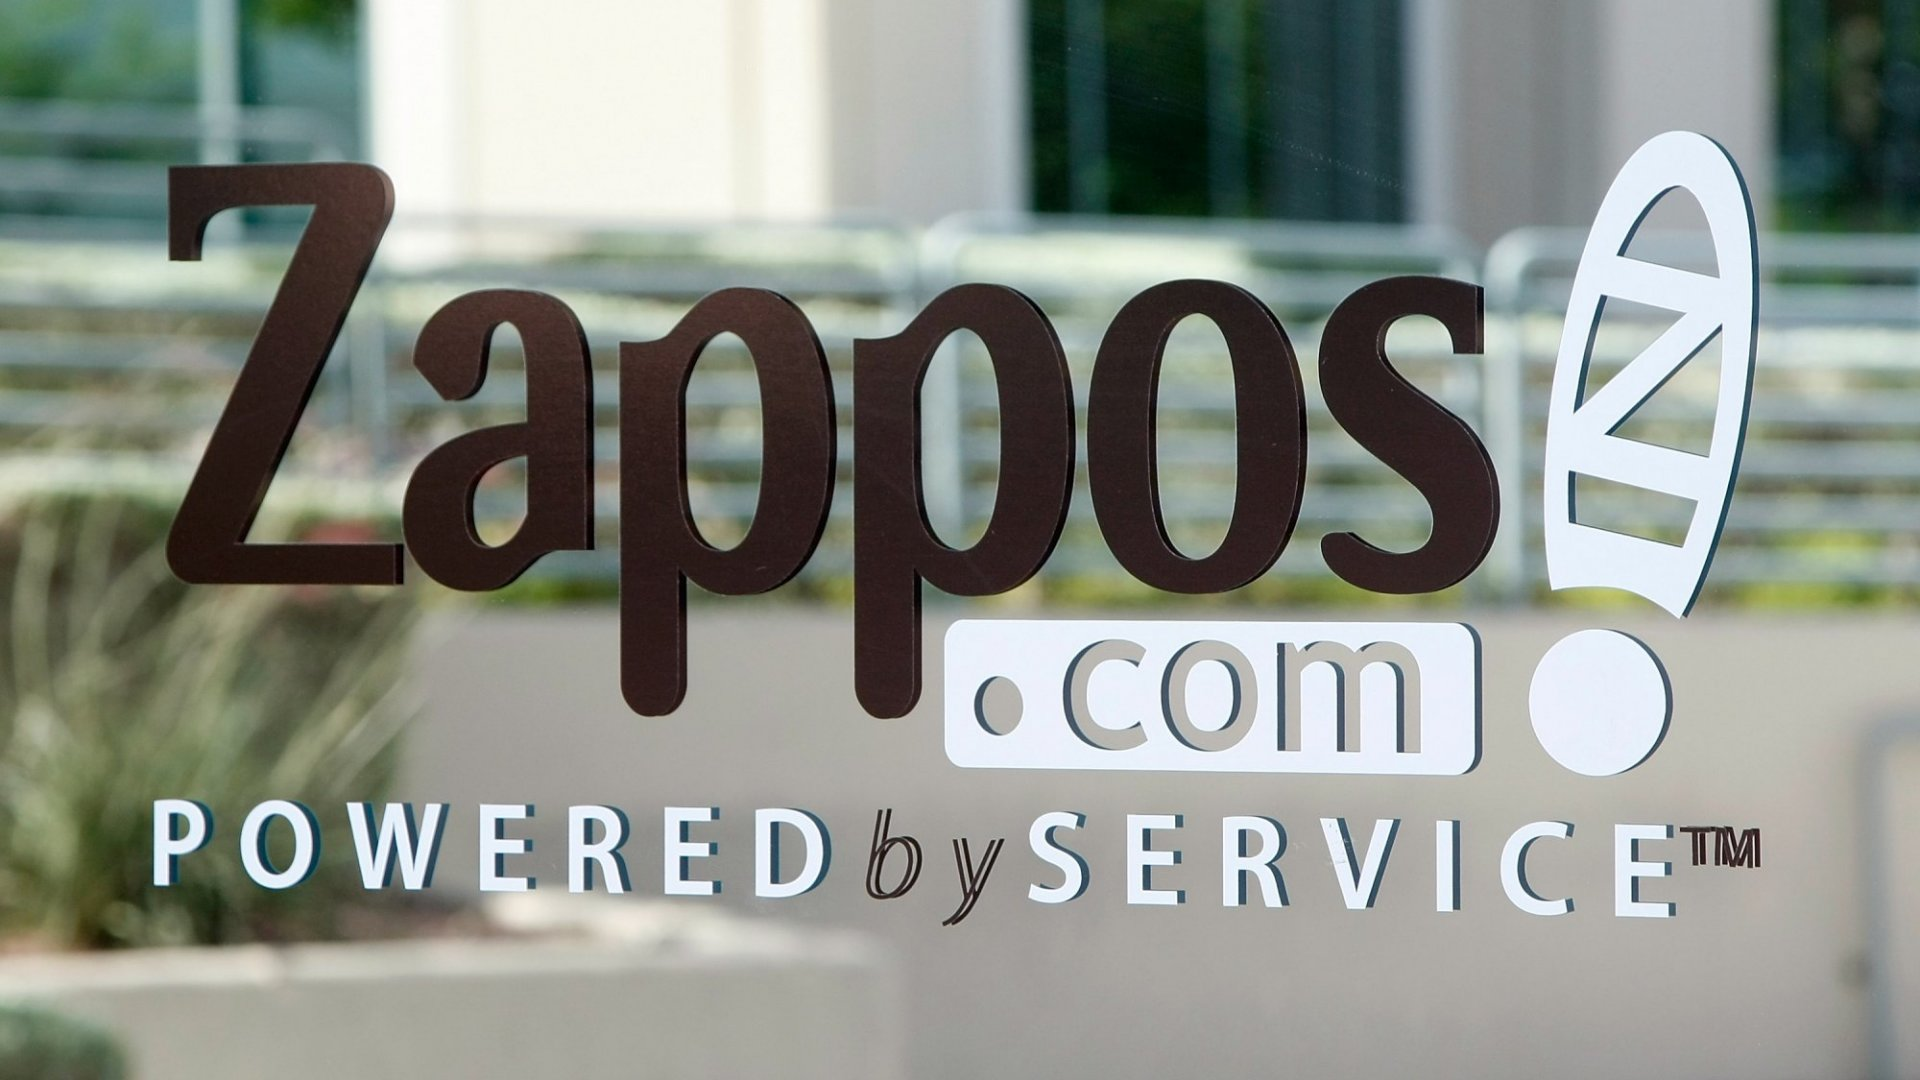 How to Bring That Zappos Magic to Your Contact Center